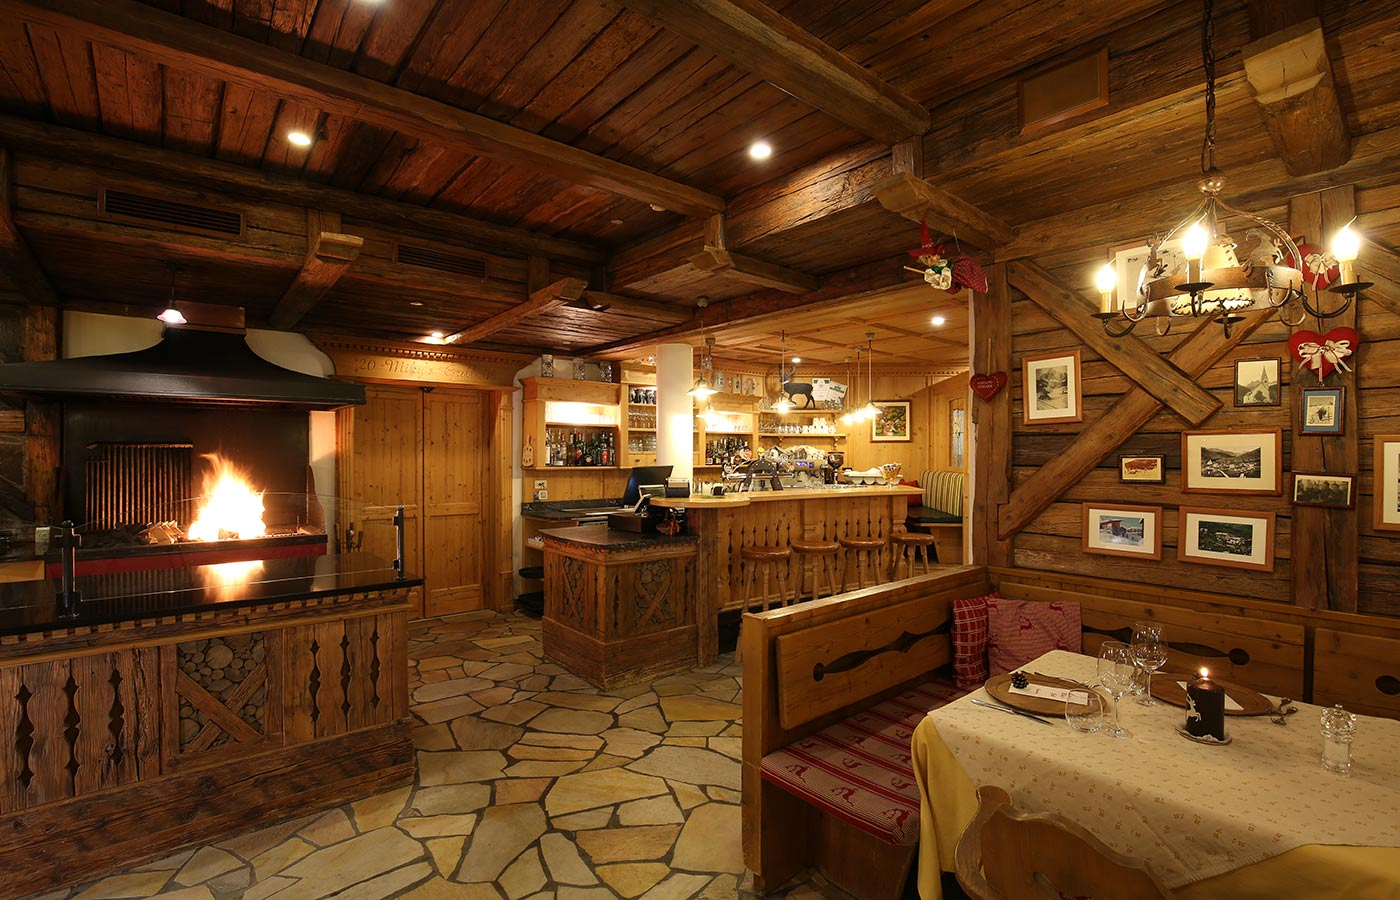 Interior of the restaurant Miky's Grill, entirely decorated in wood with oven on